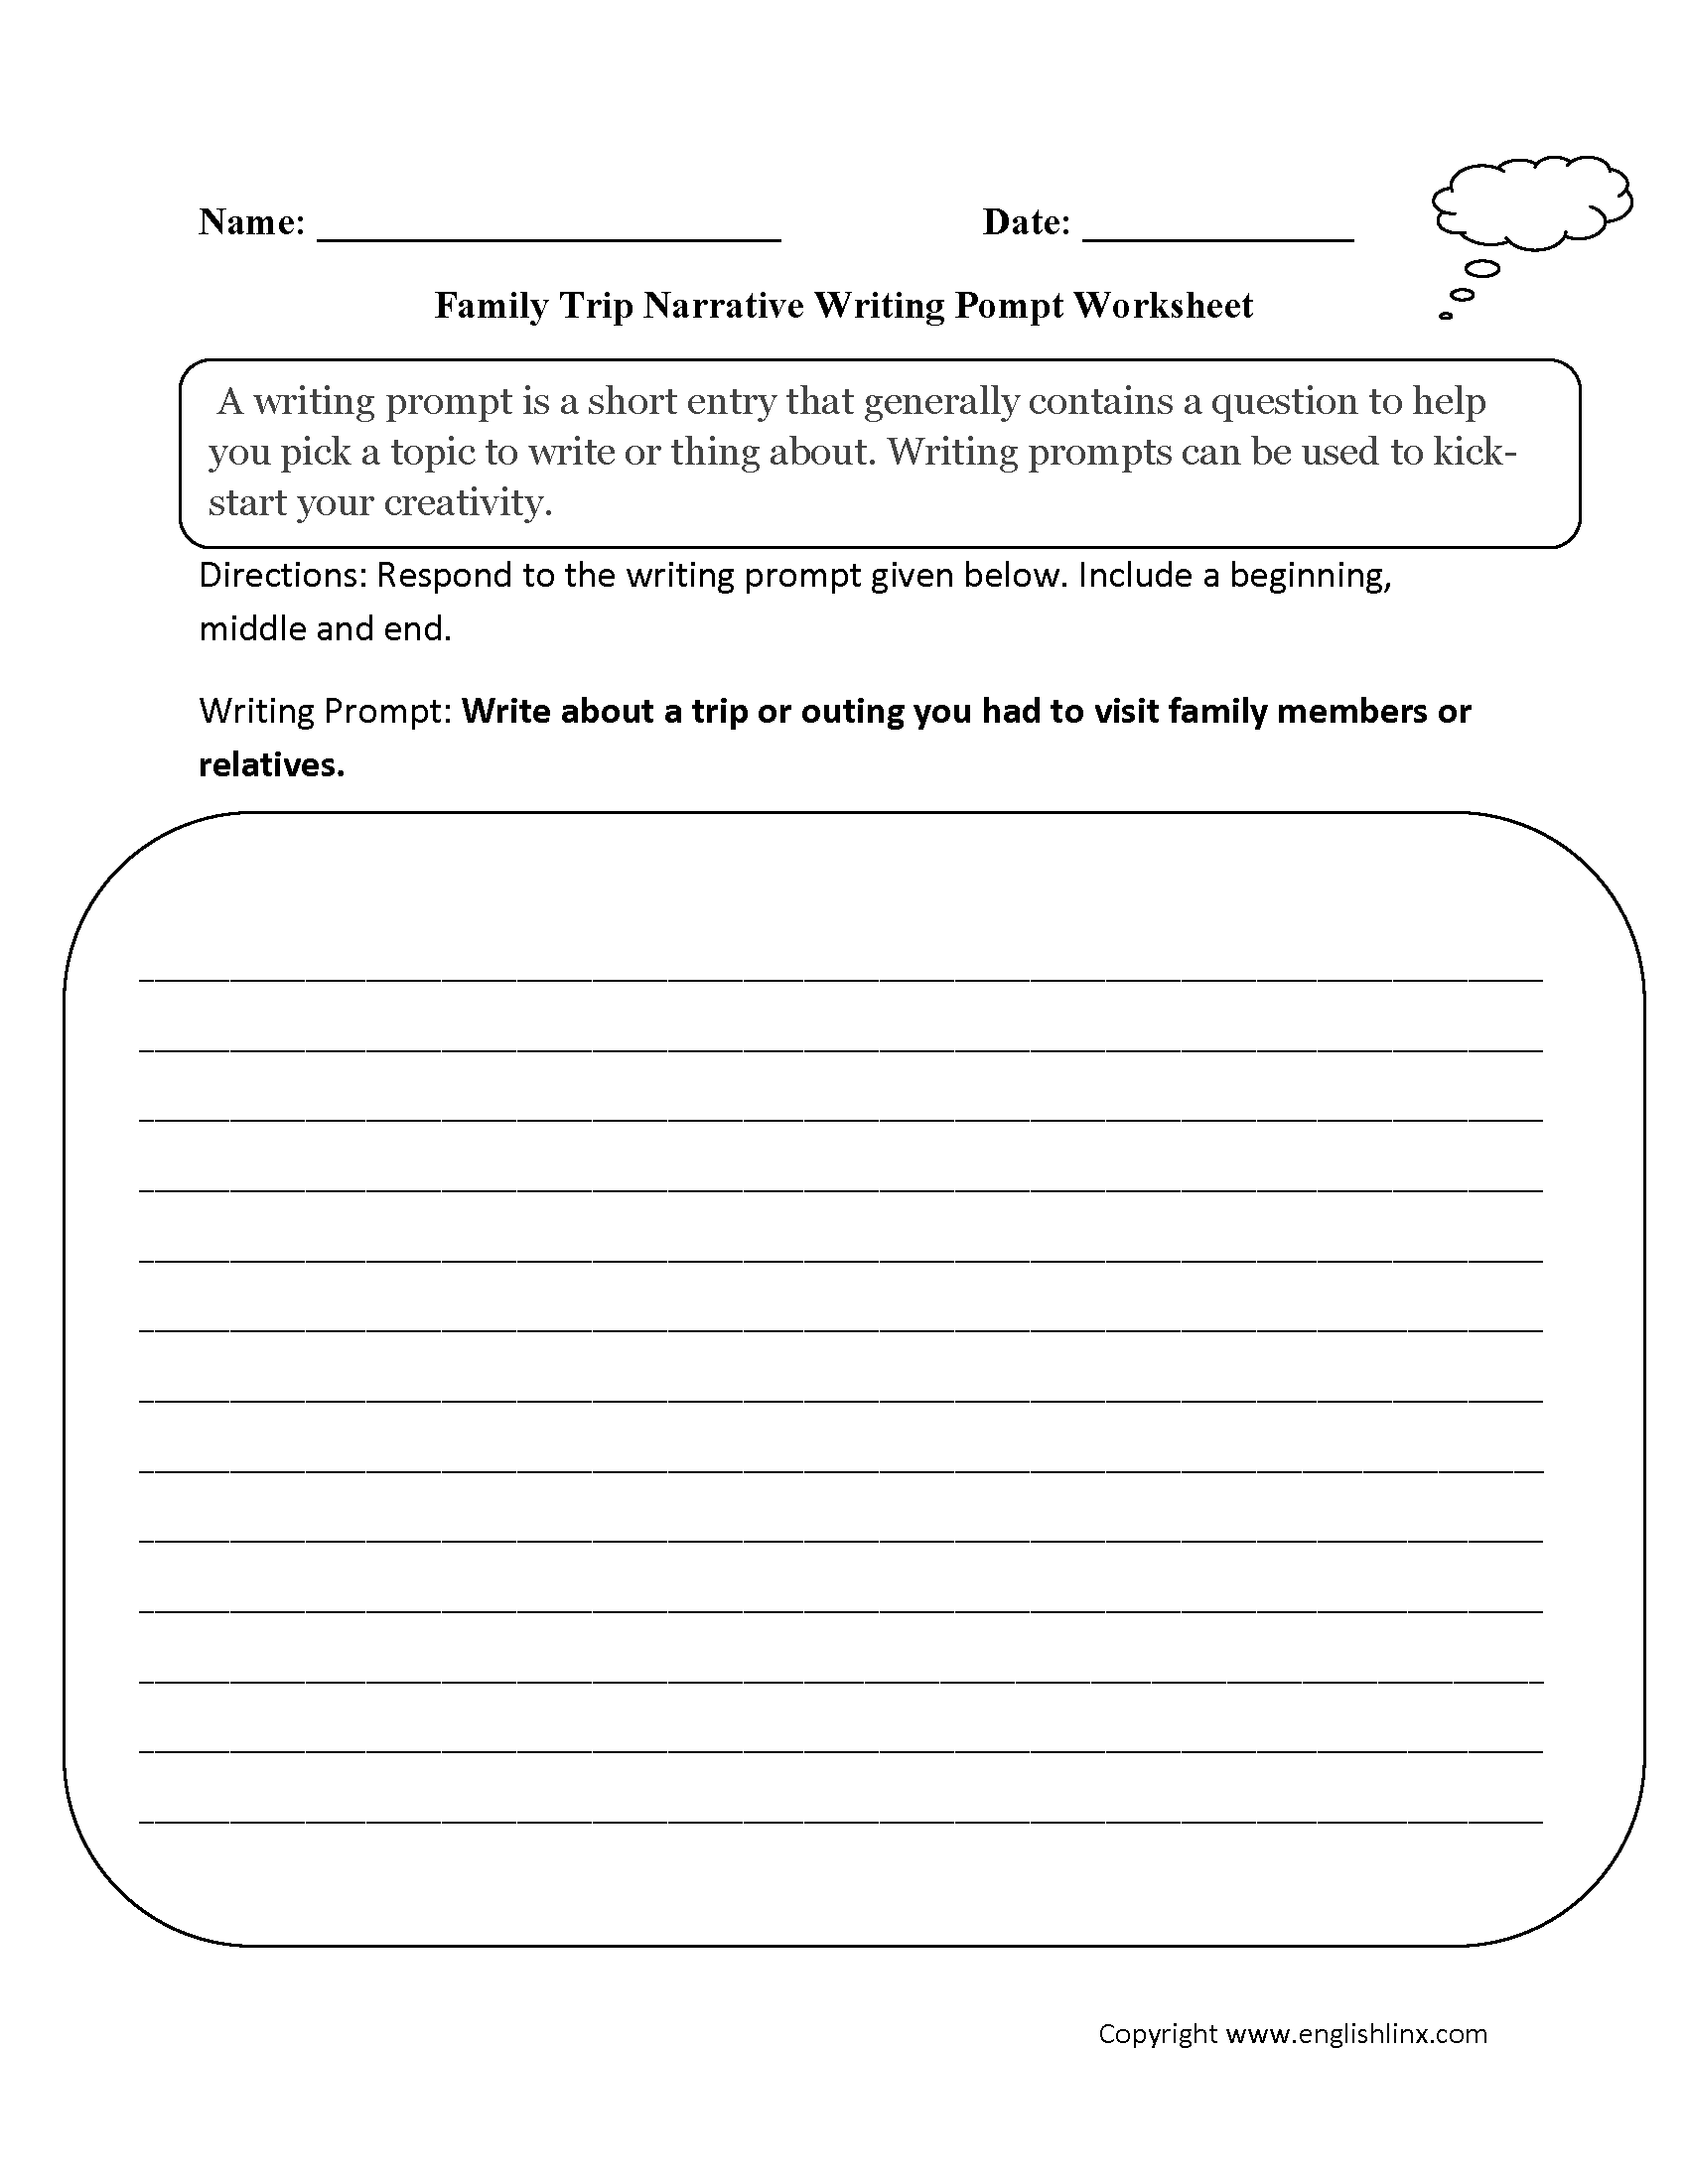 Worksheets Fifth Grade Writing Worksheets englishlinx com writing prompts worksheets worksheets